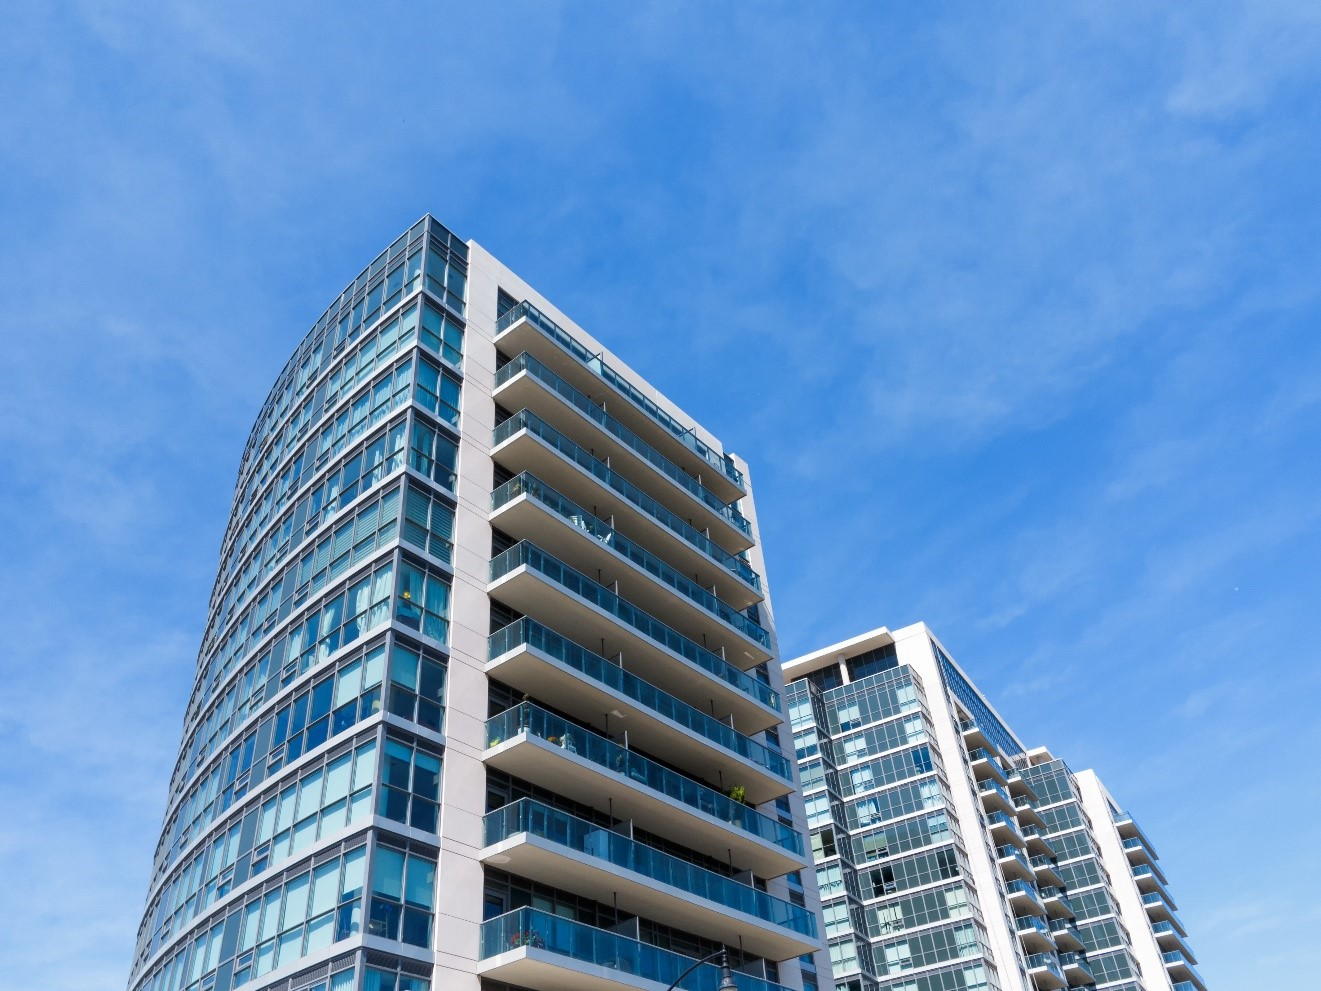 condos-astuces-achat-erreurs-courtier-immobilier